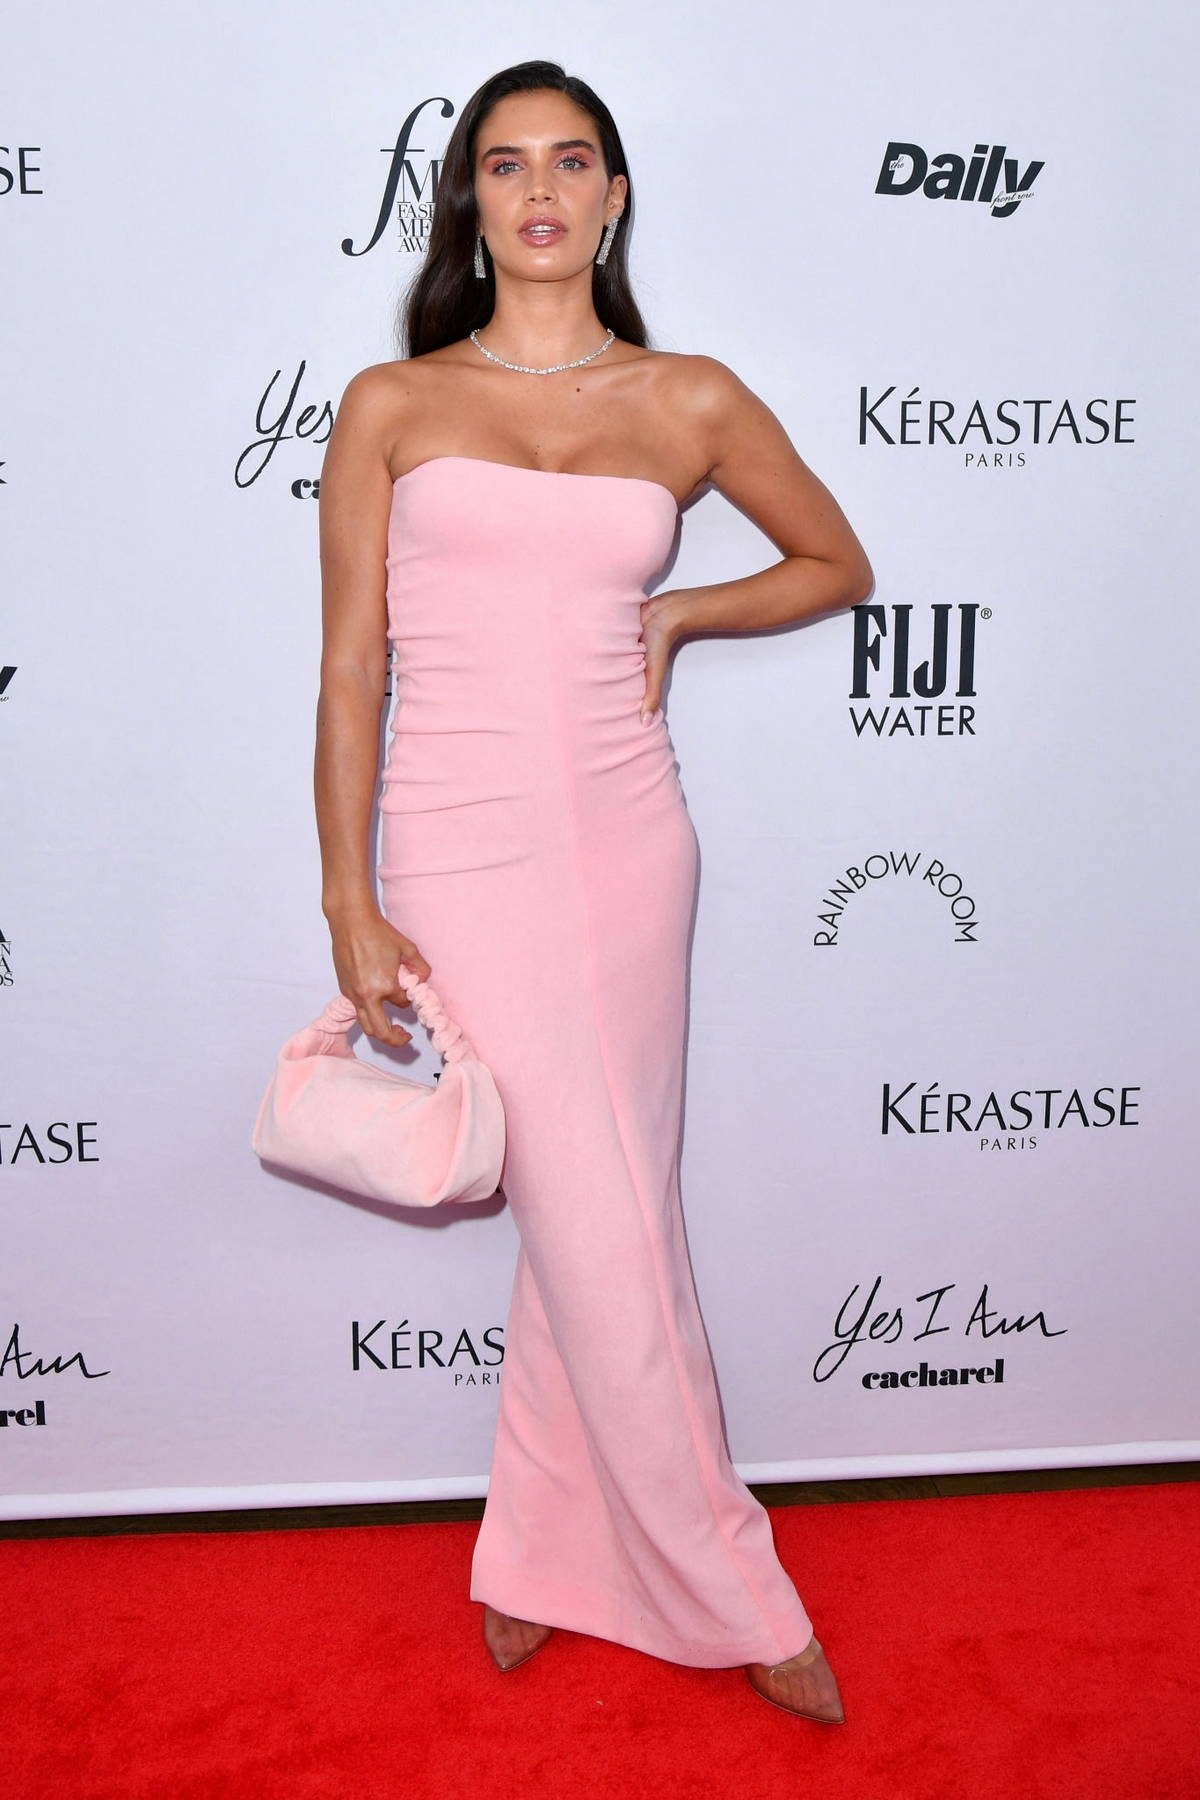 Sara Sampaio attends the 2021 Daily Front Row Fashion Media Awards in New York City